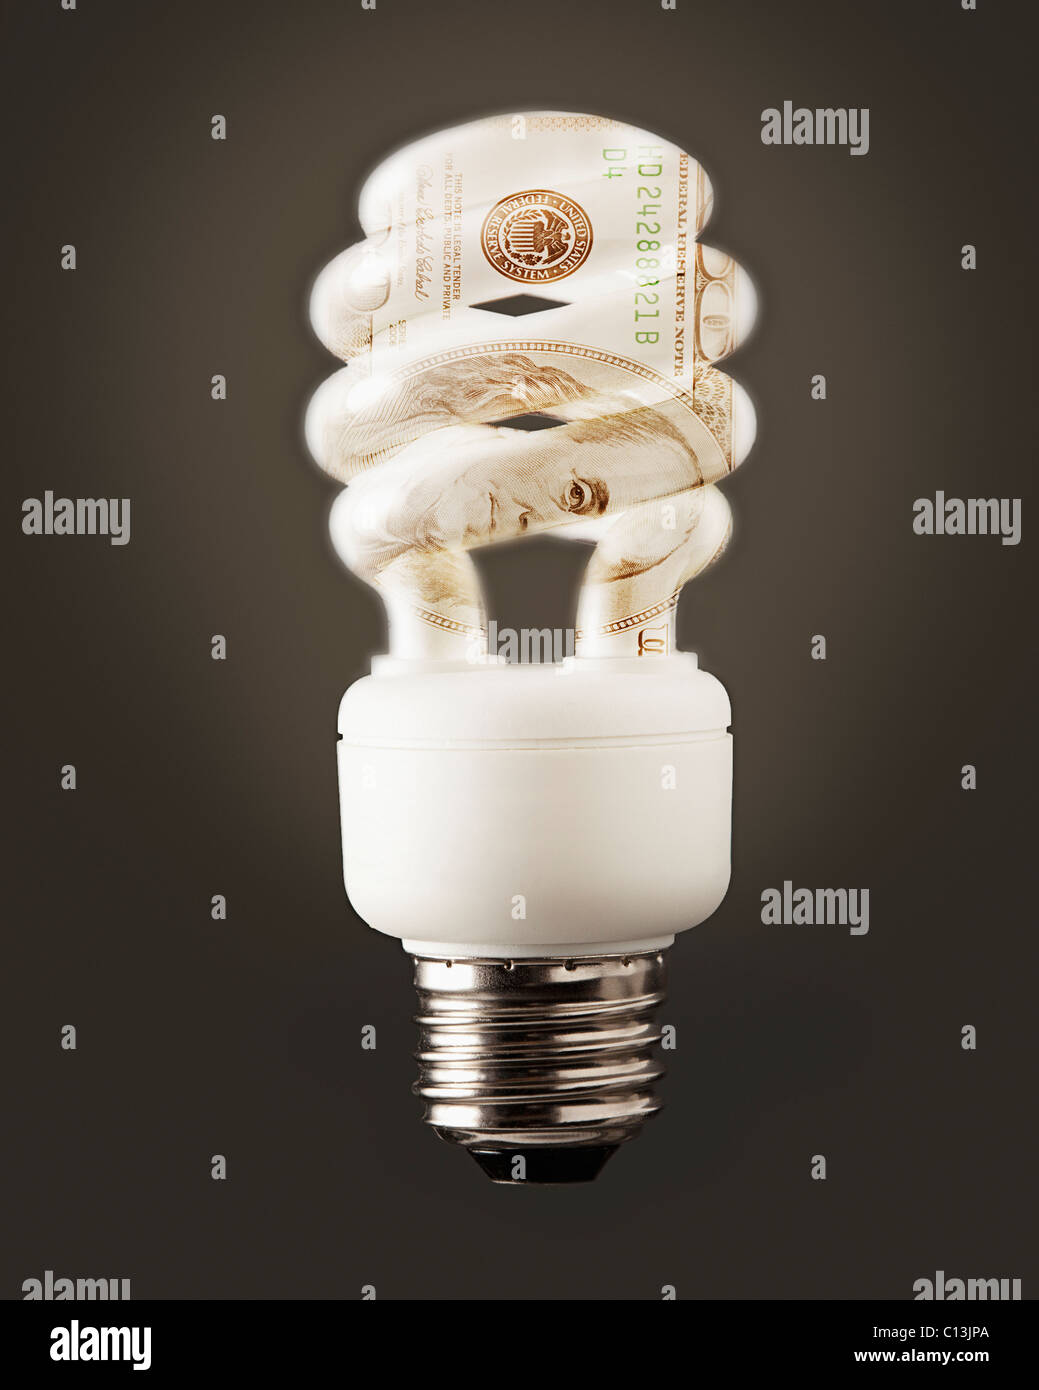 Composition of energy efficient bulb and one hundred dollar note - Stock Image